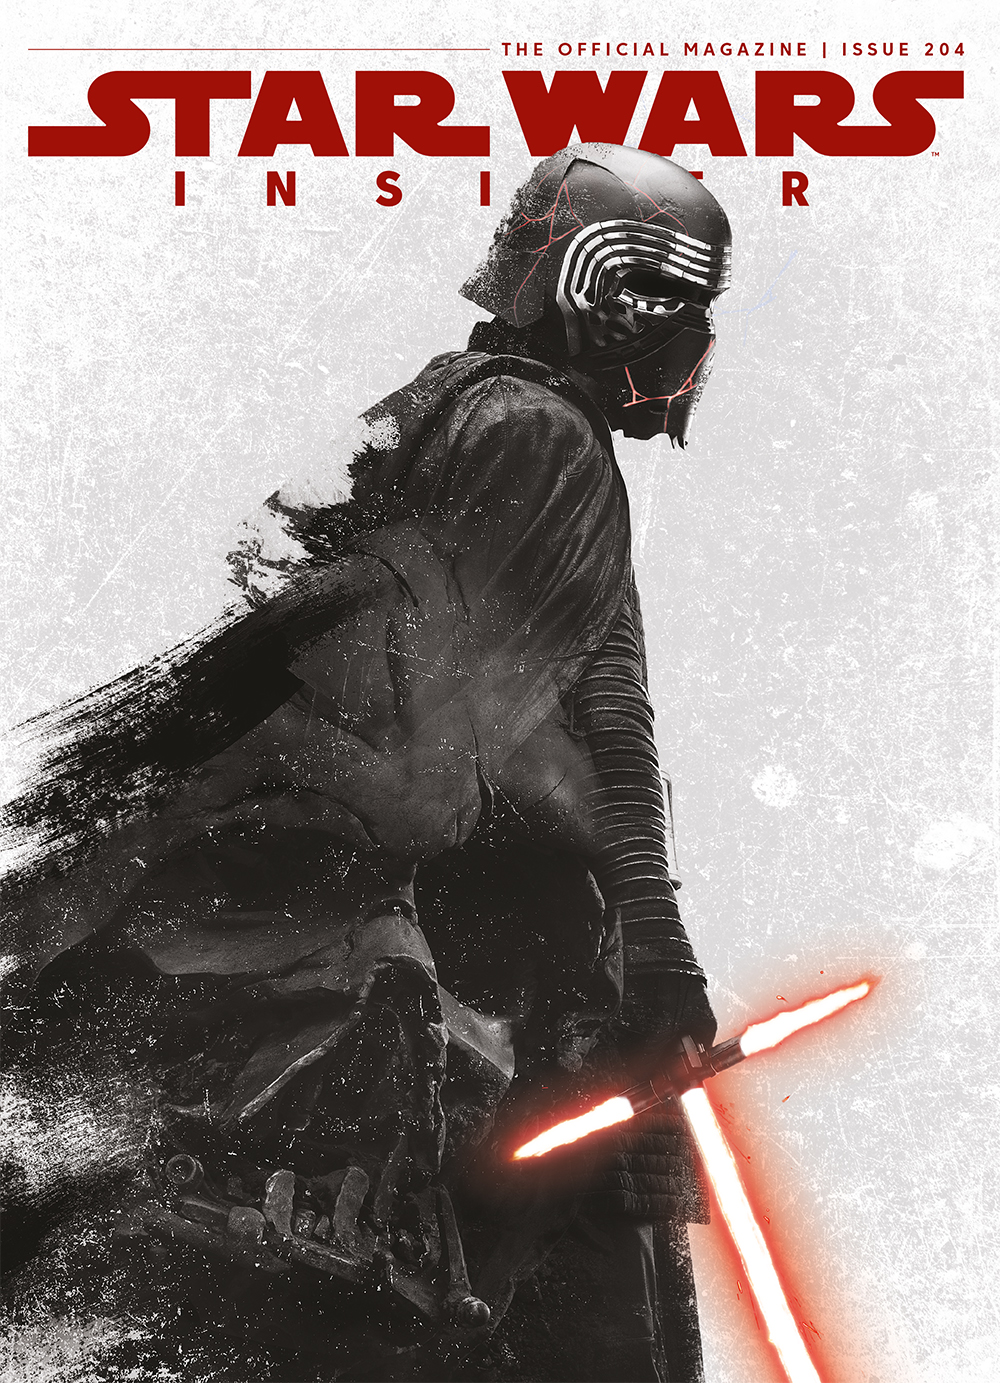 Star Wars Insider #204 (Comic Store Cover) (10.08.2021)